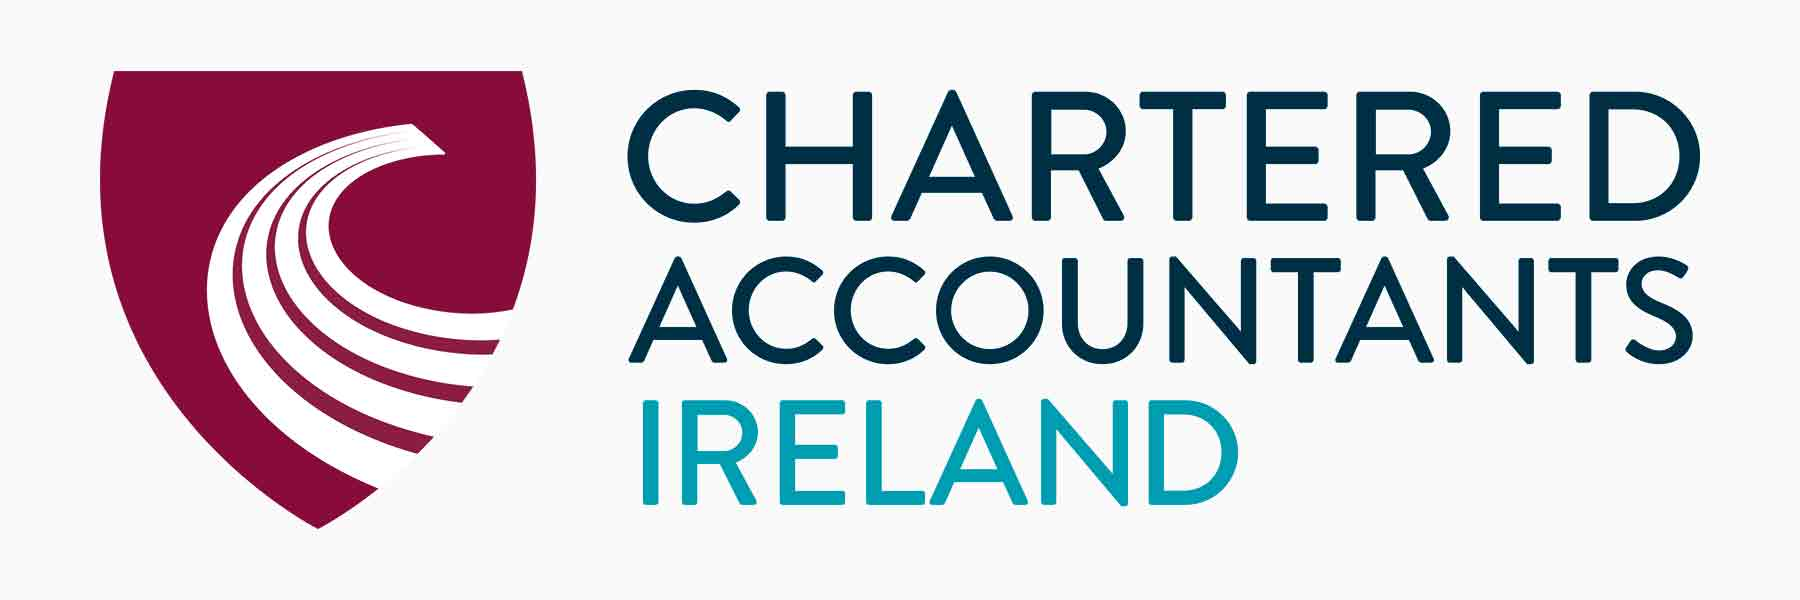 Chartered Accountants Ireland Logo-min